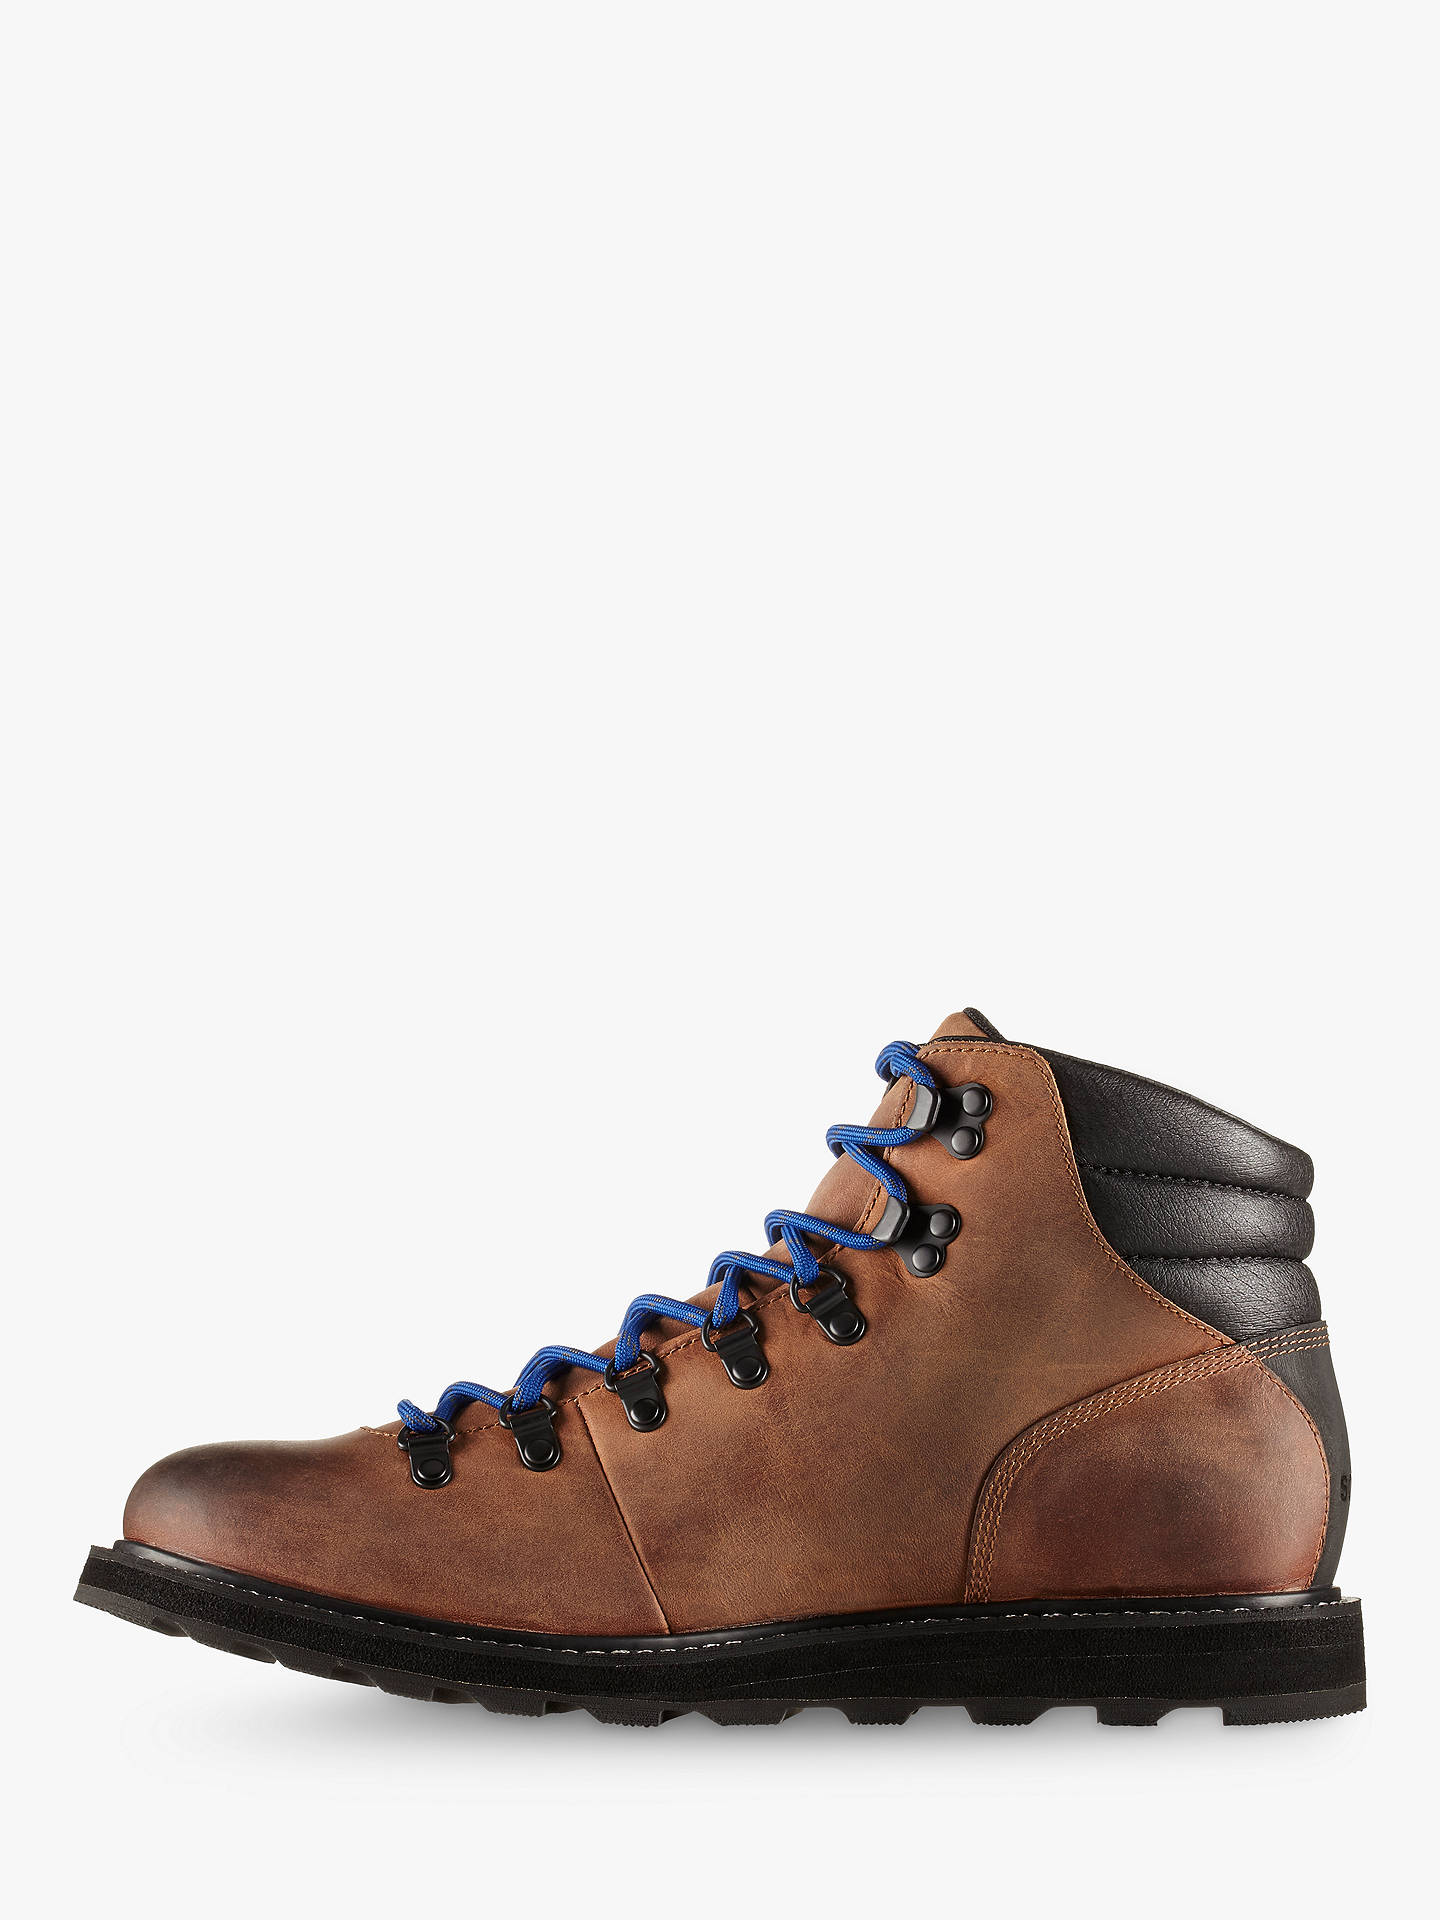 ddf1baedb9e SOREL Madson Waterproof Hiker Boots at John Lewis & Partners